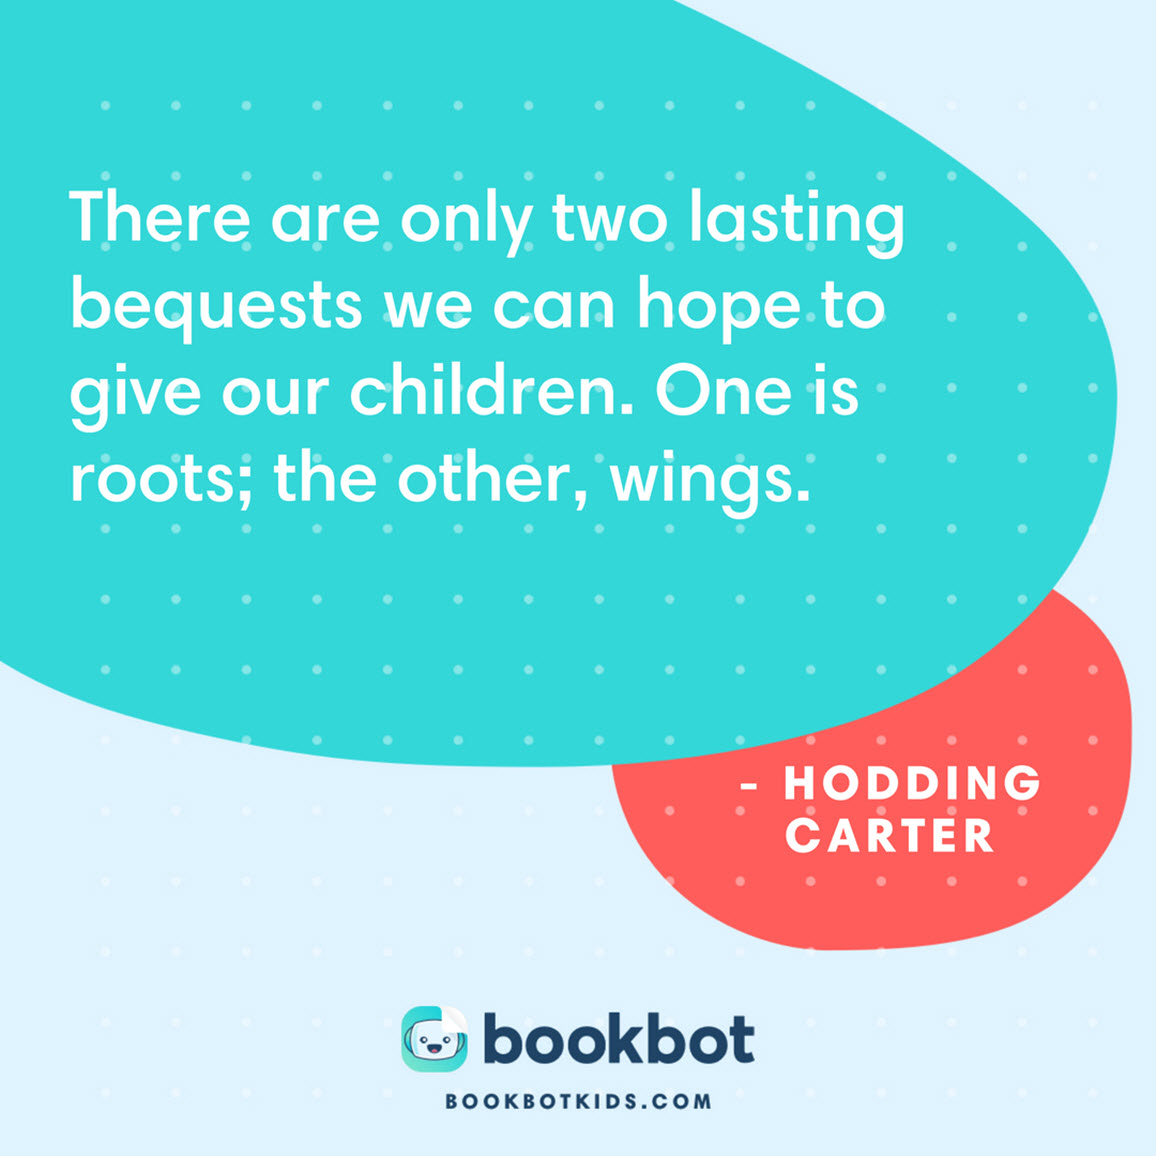 There are only two lasting bequests we can hope to give our children. One is roots; the other, wings. – Hodding Carter